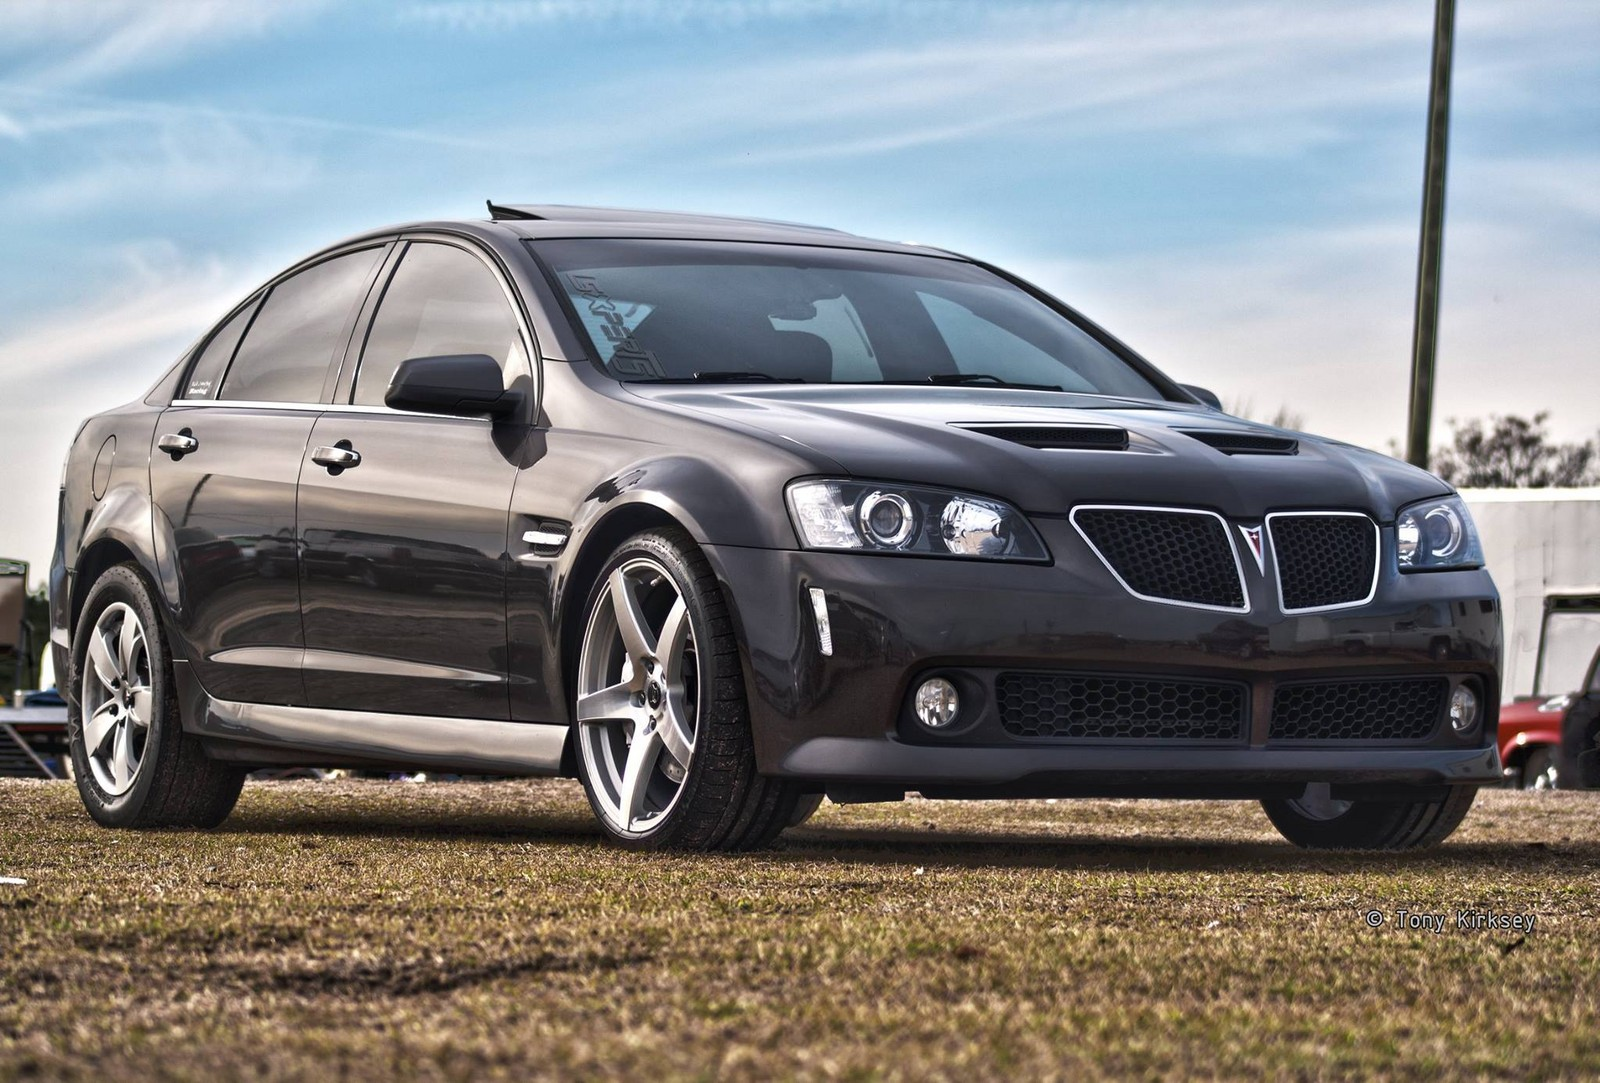 Magnetic Grey Metallic 2008 Pontiac G8 GT